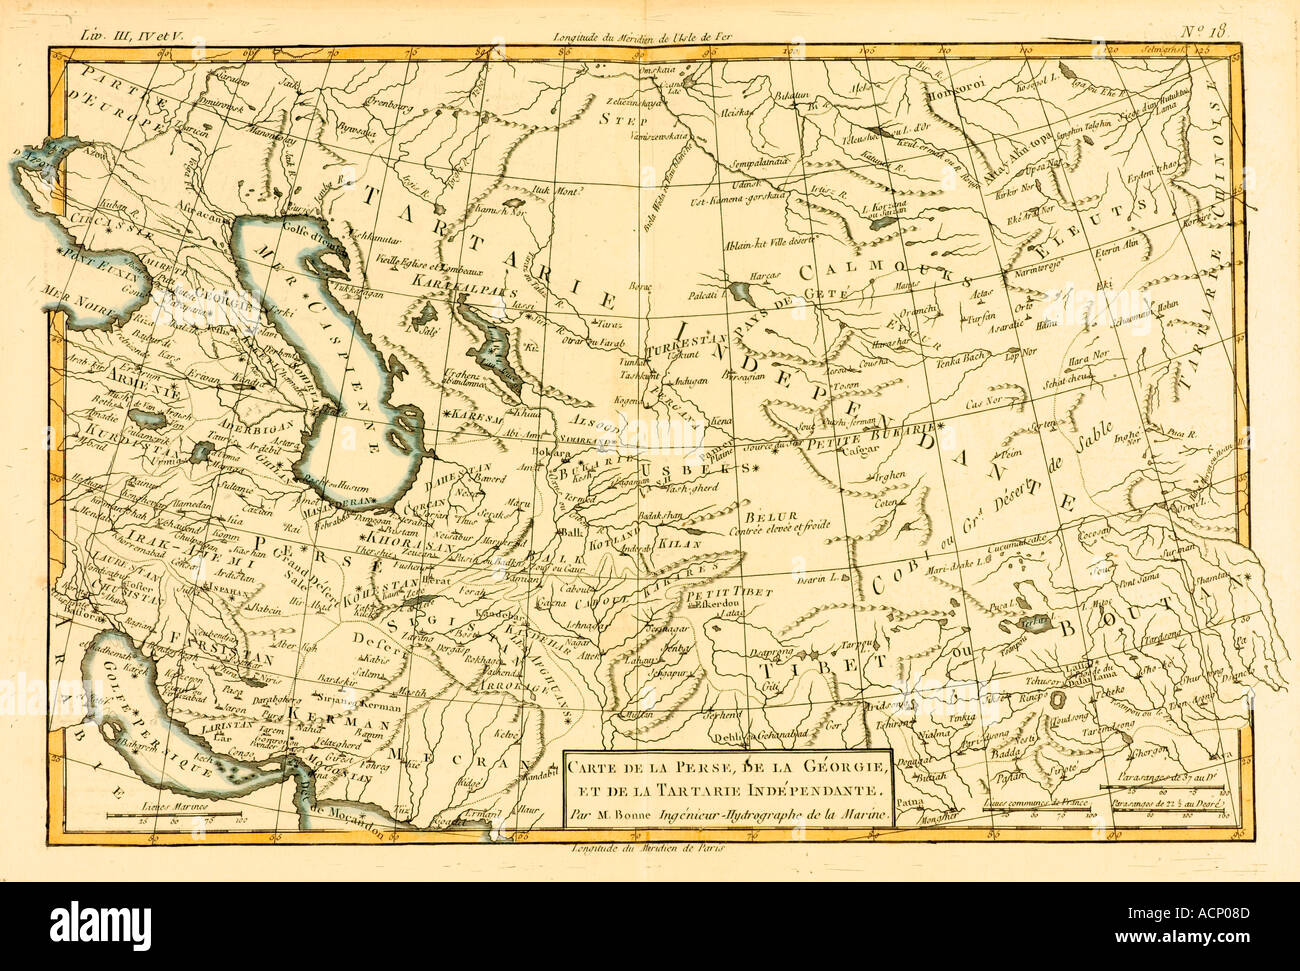 Map of Central Asia circa 1760 - Stock Image